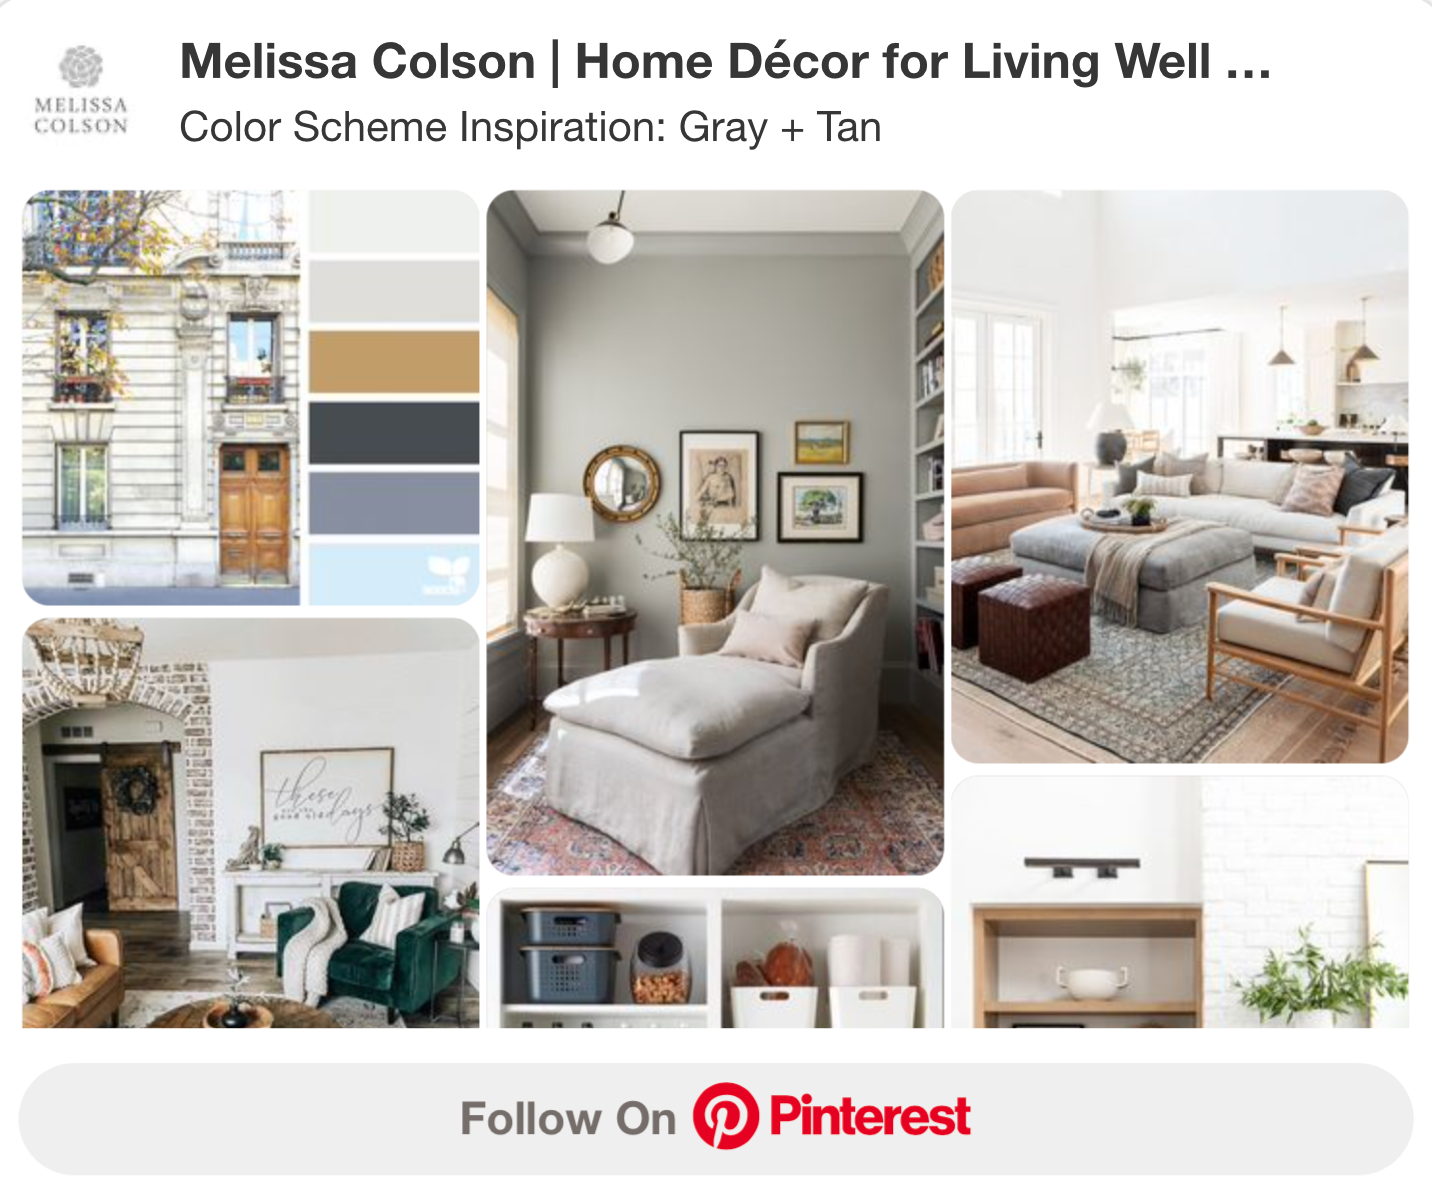 Color Scheme Inspiration Board Gray and Tan